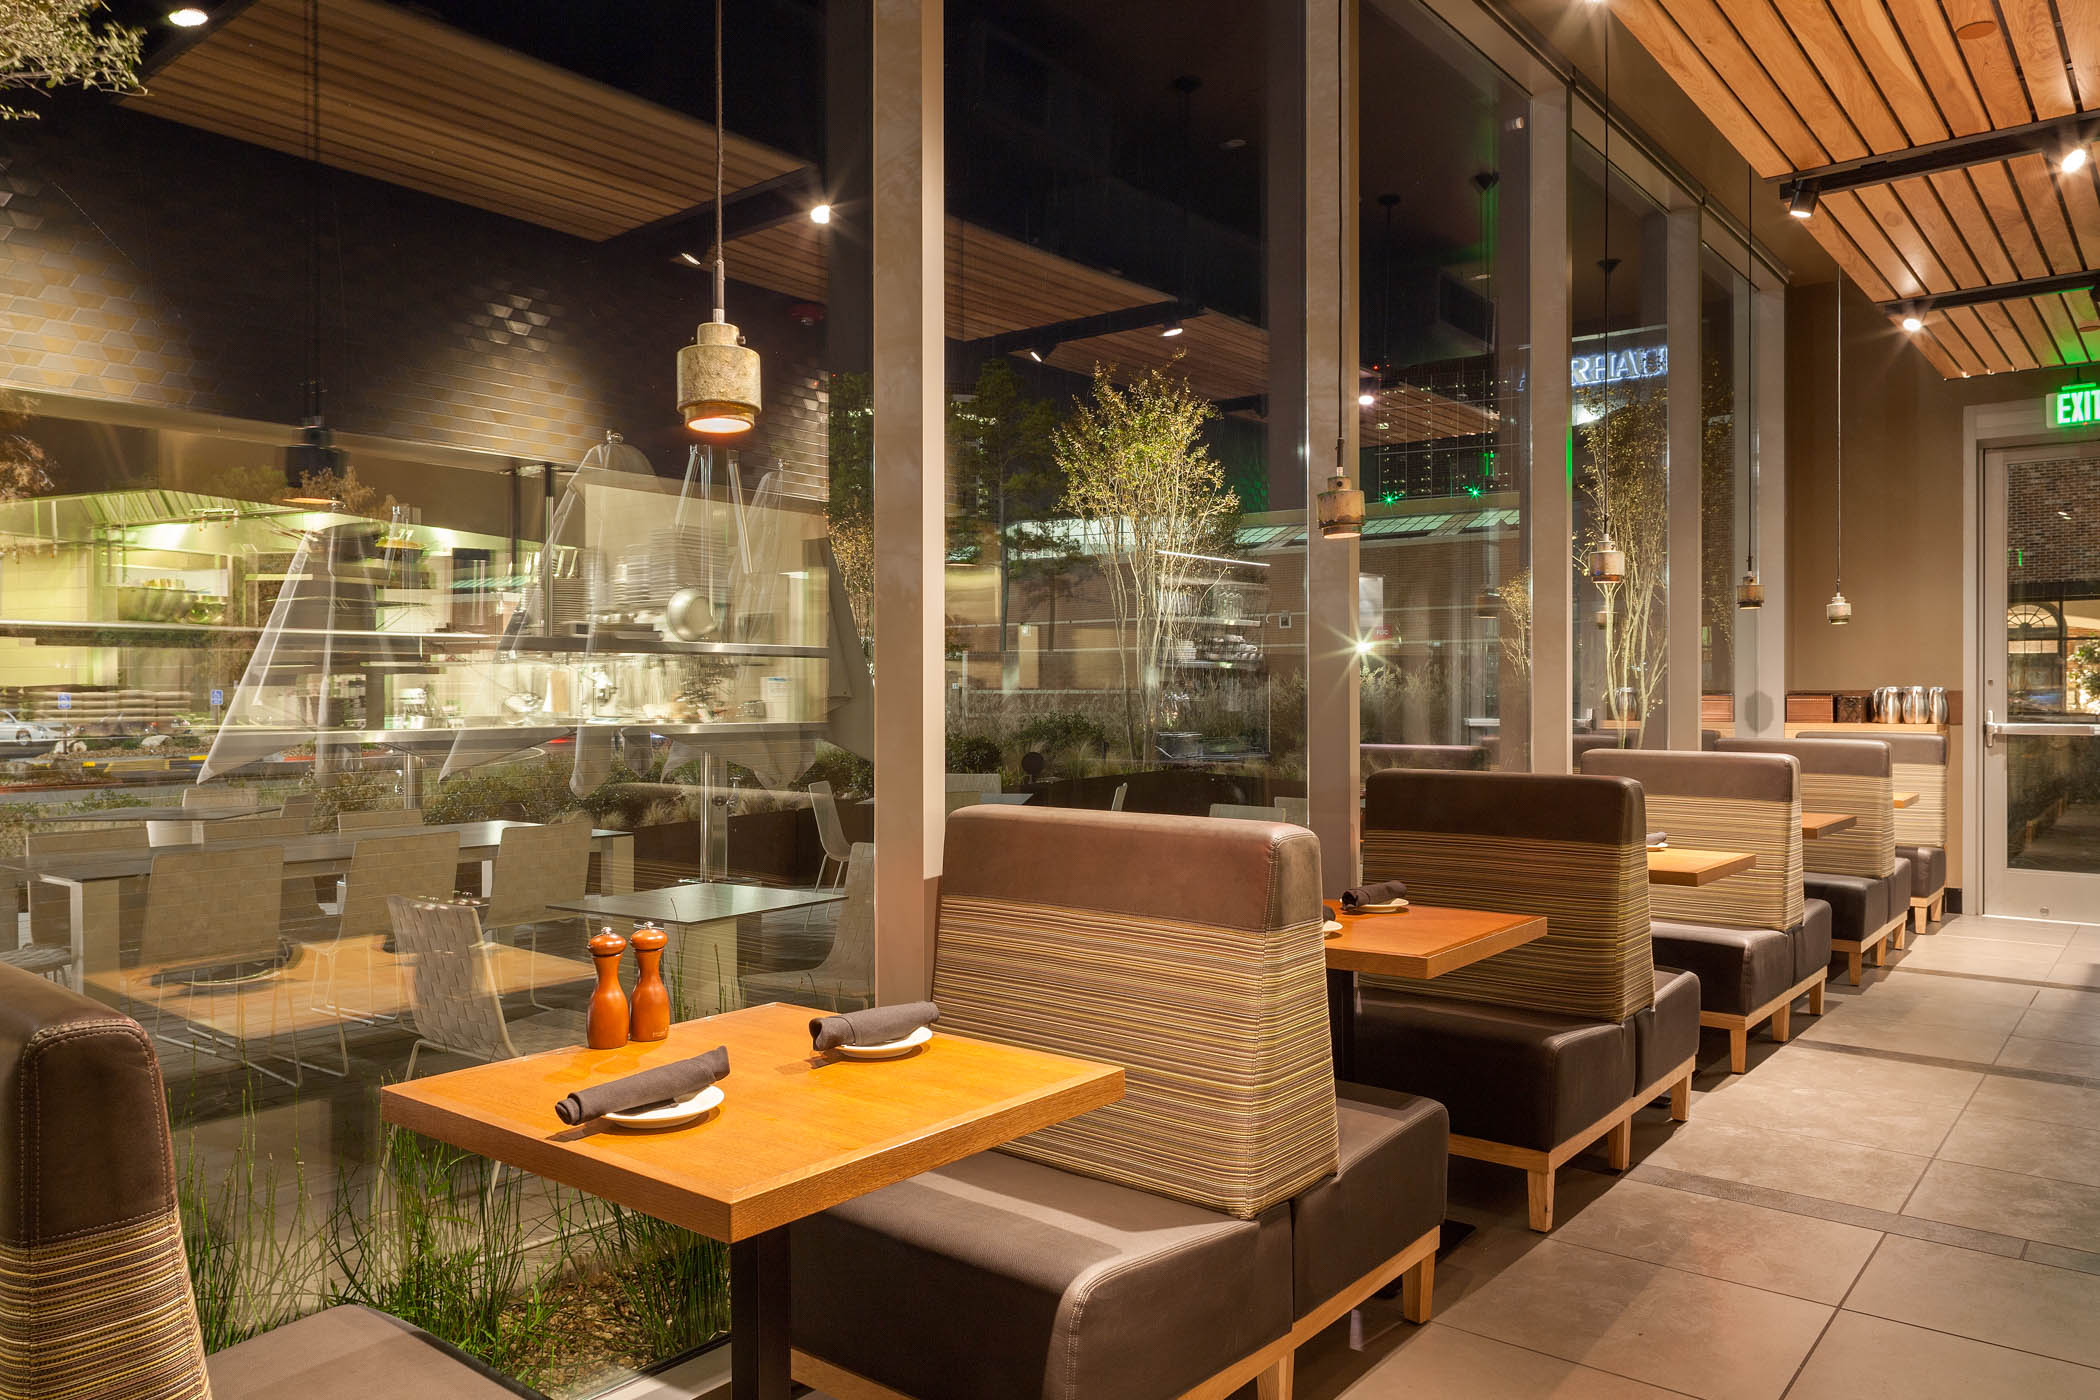 Bazille at Nordstrom Restaurant decor ideas